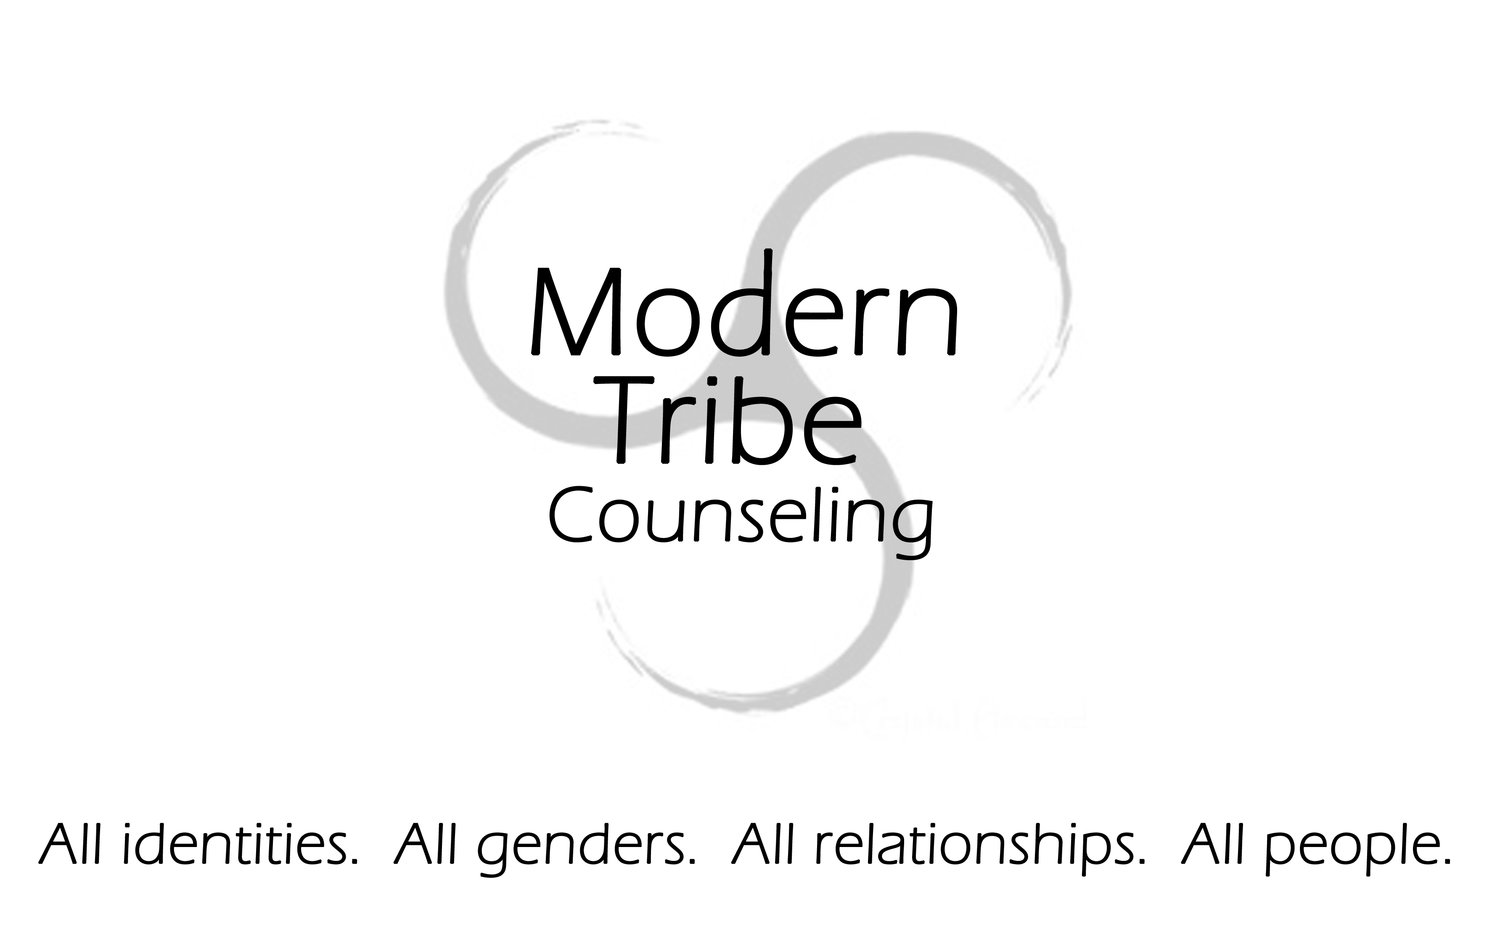 Modern Tribe Counseling